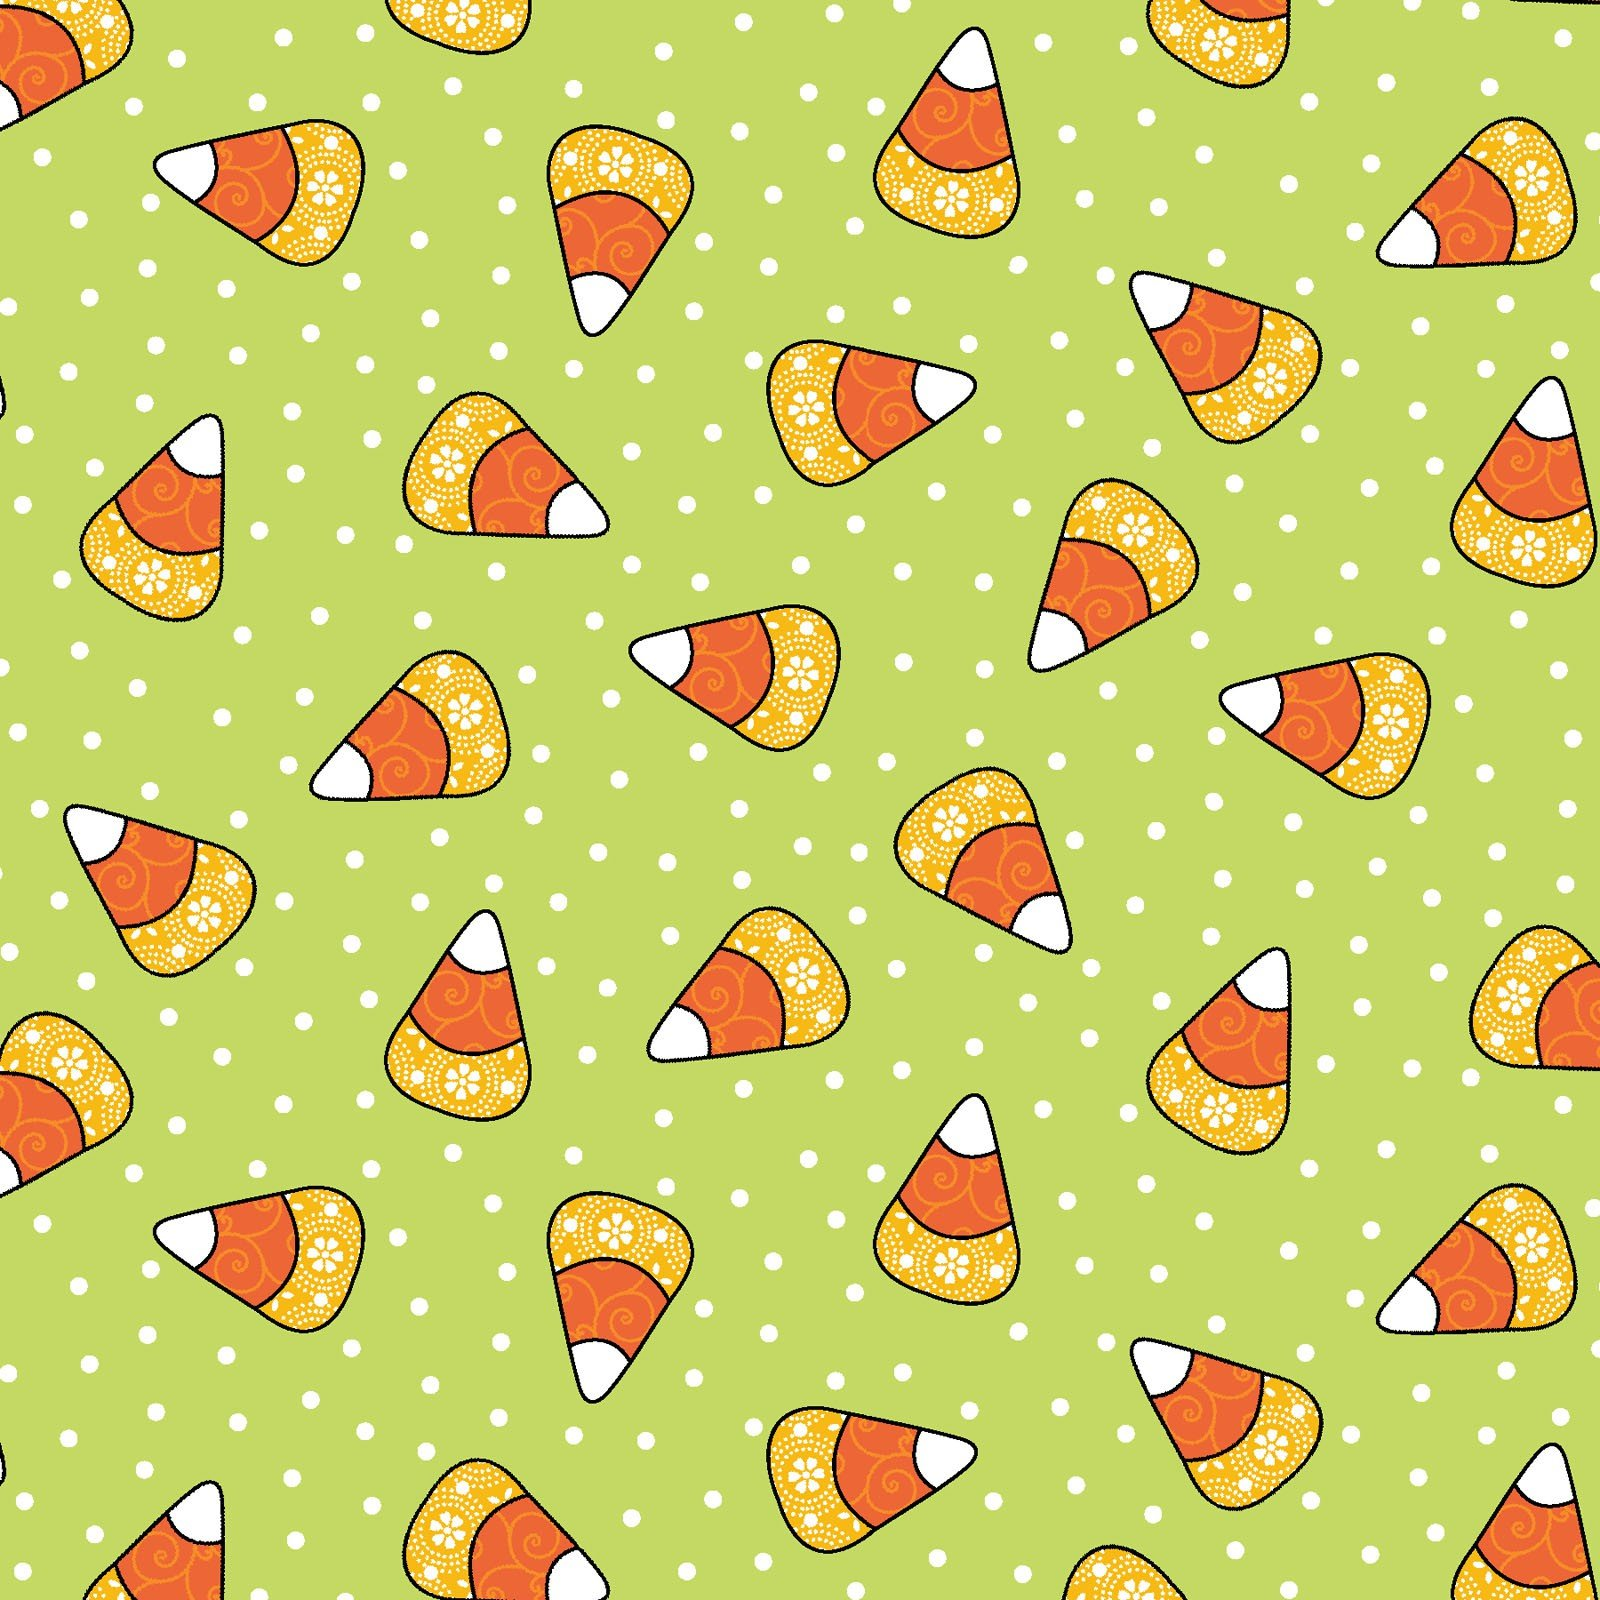 Broomhilda's Bakery - Candy Corn Dots - Lime